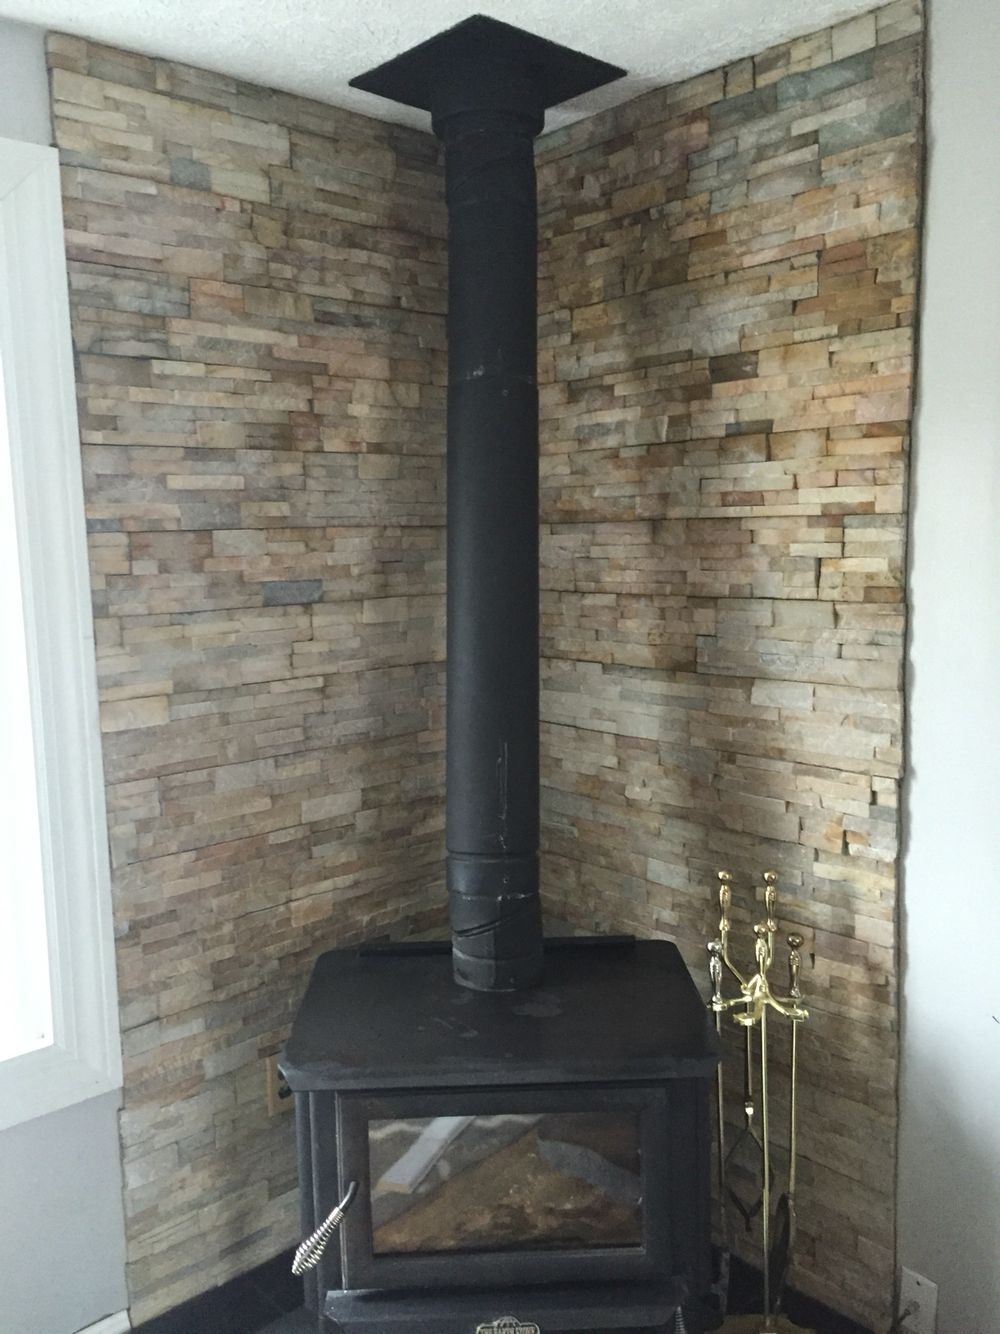 Wood stove surround. - Our DIY Wood Stove Installation Wood Burning, Stove And Apartments